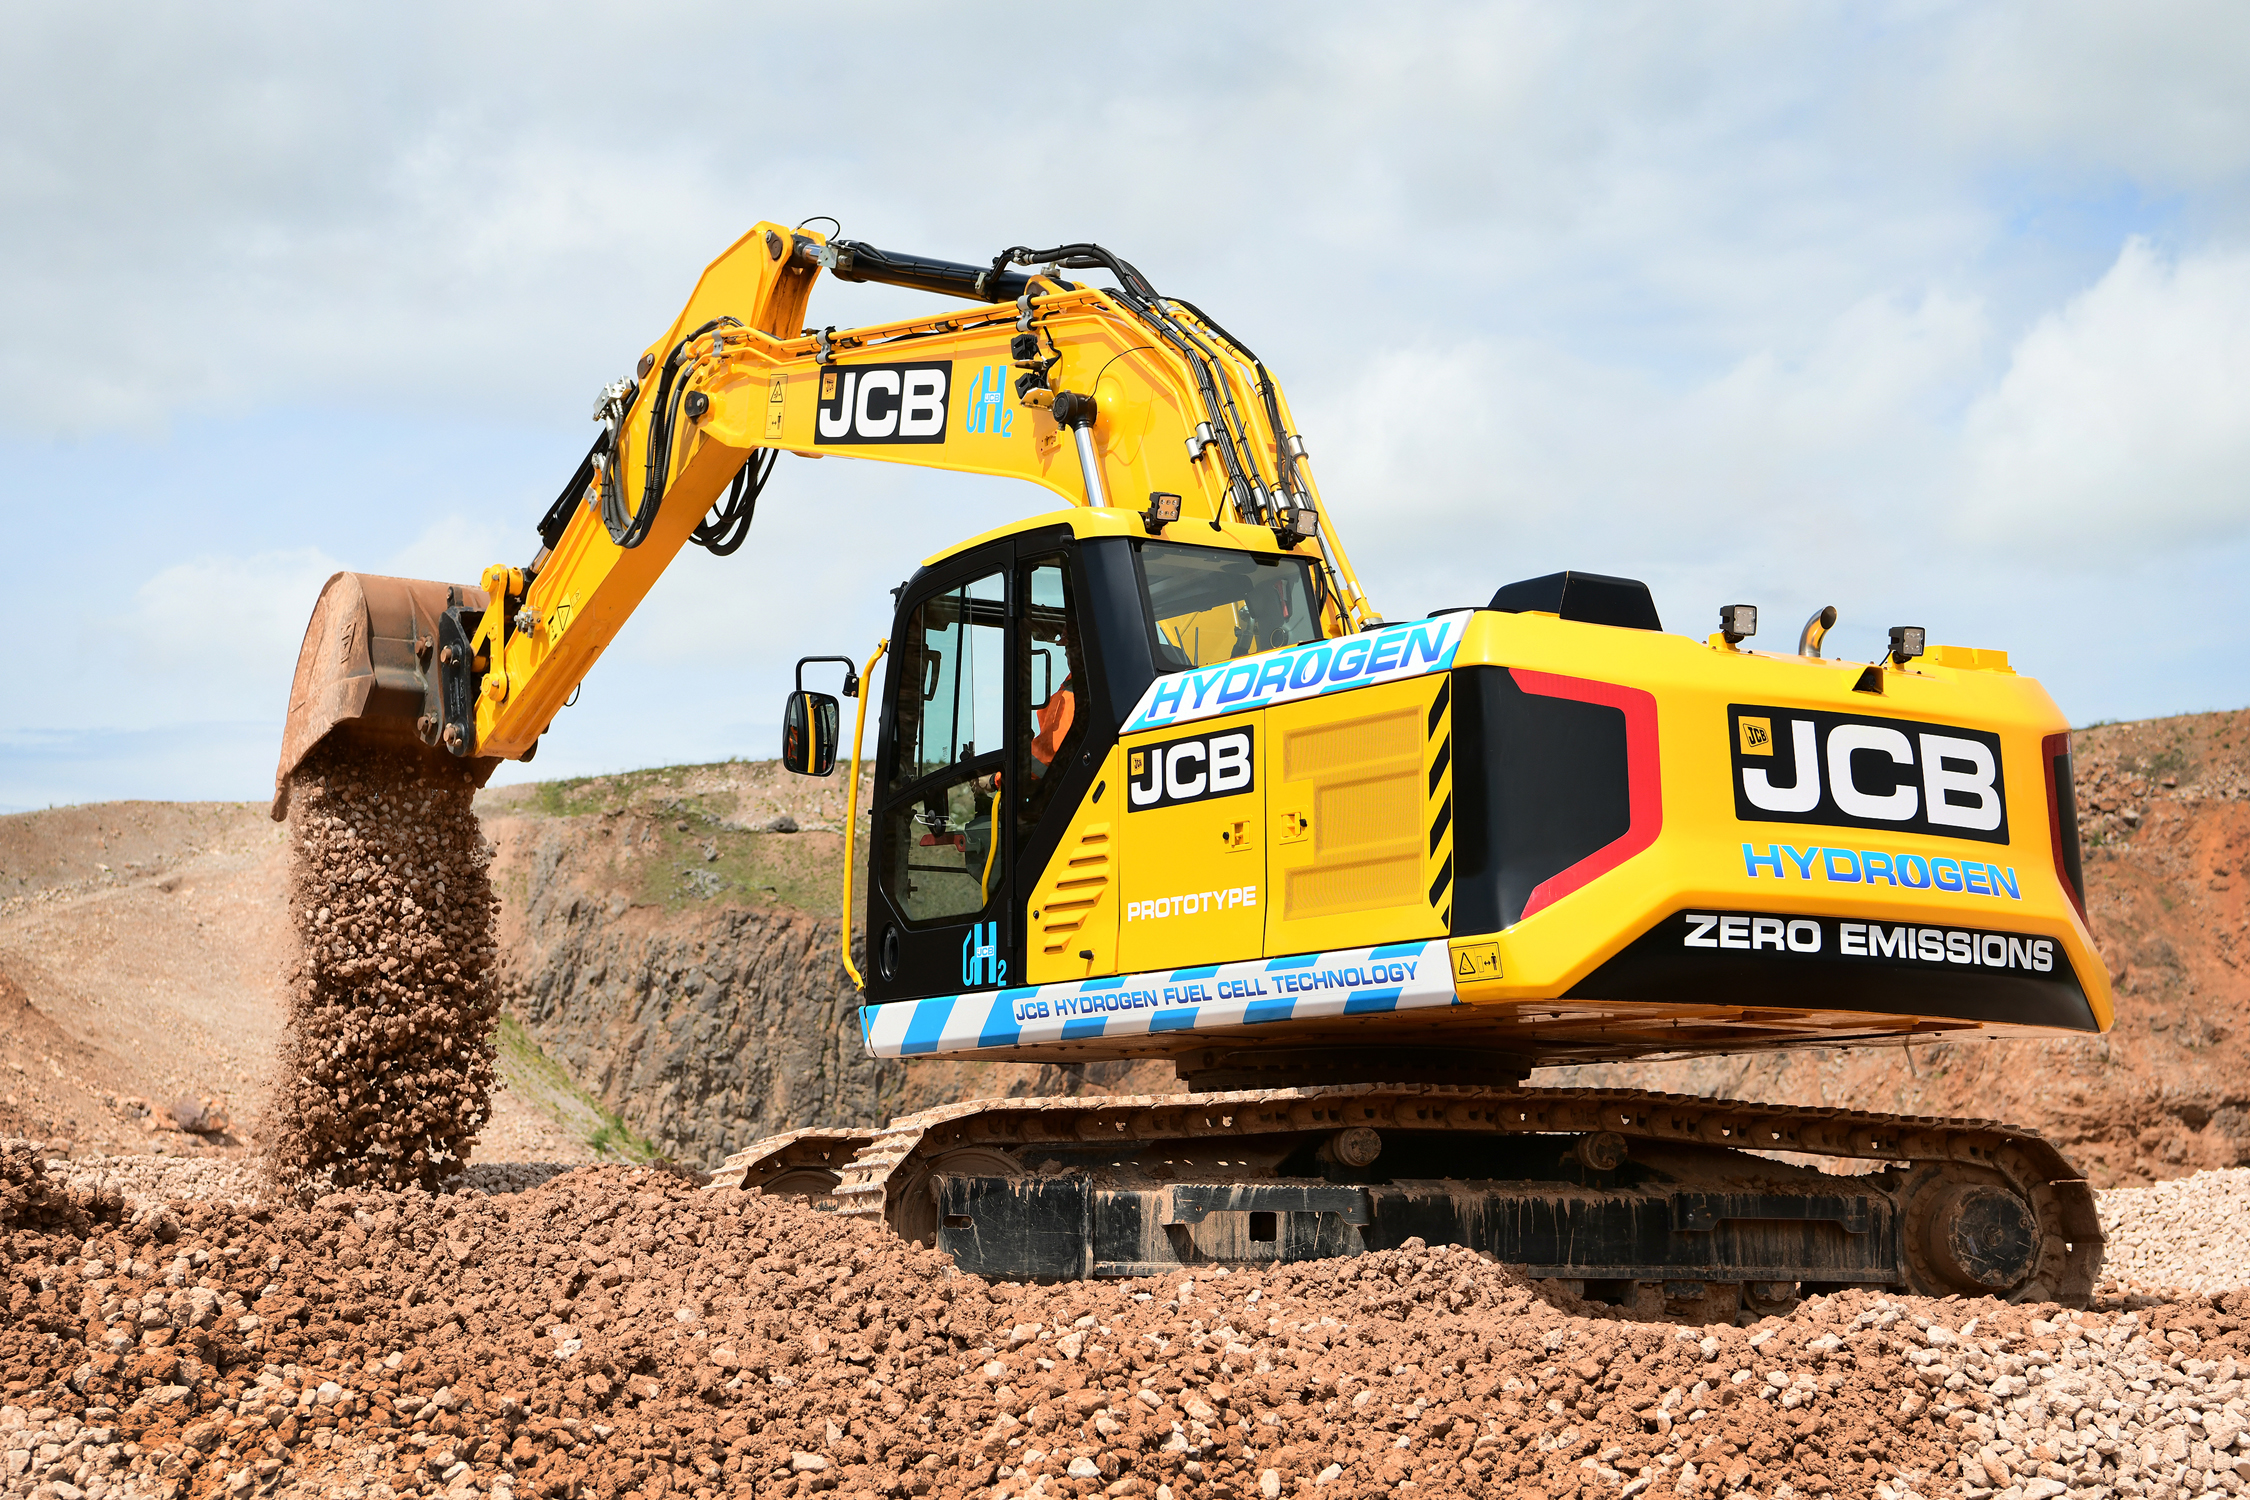 Hydrogen powered JCB 220X